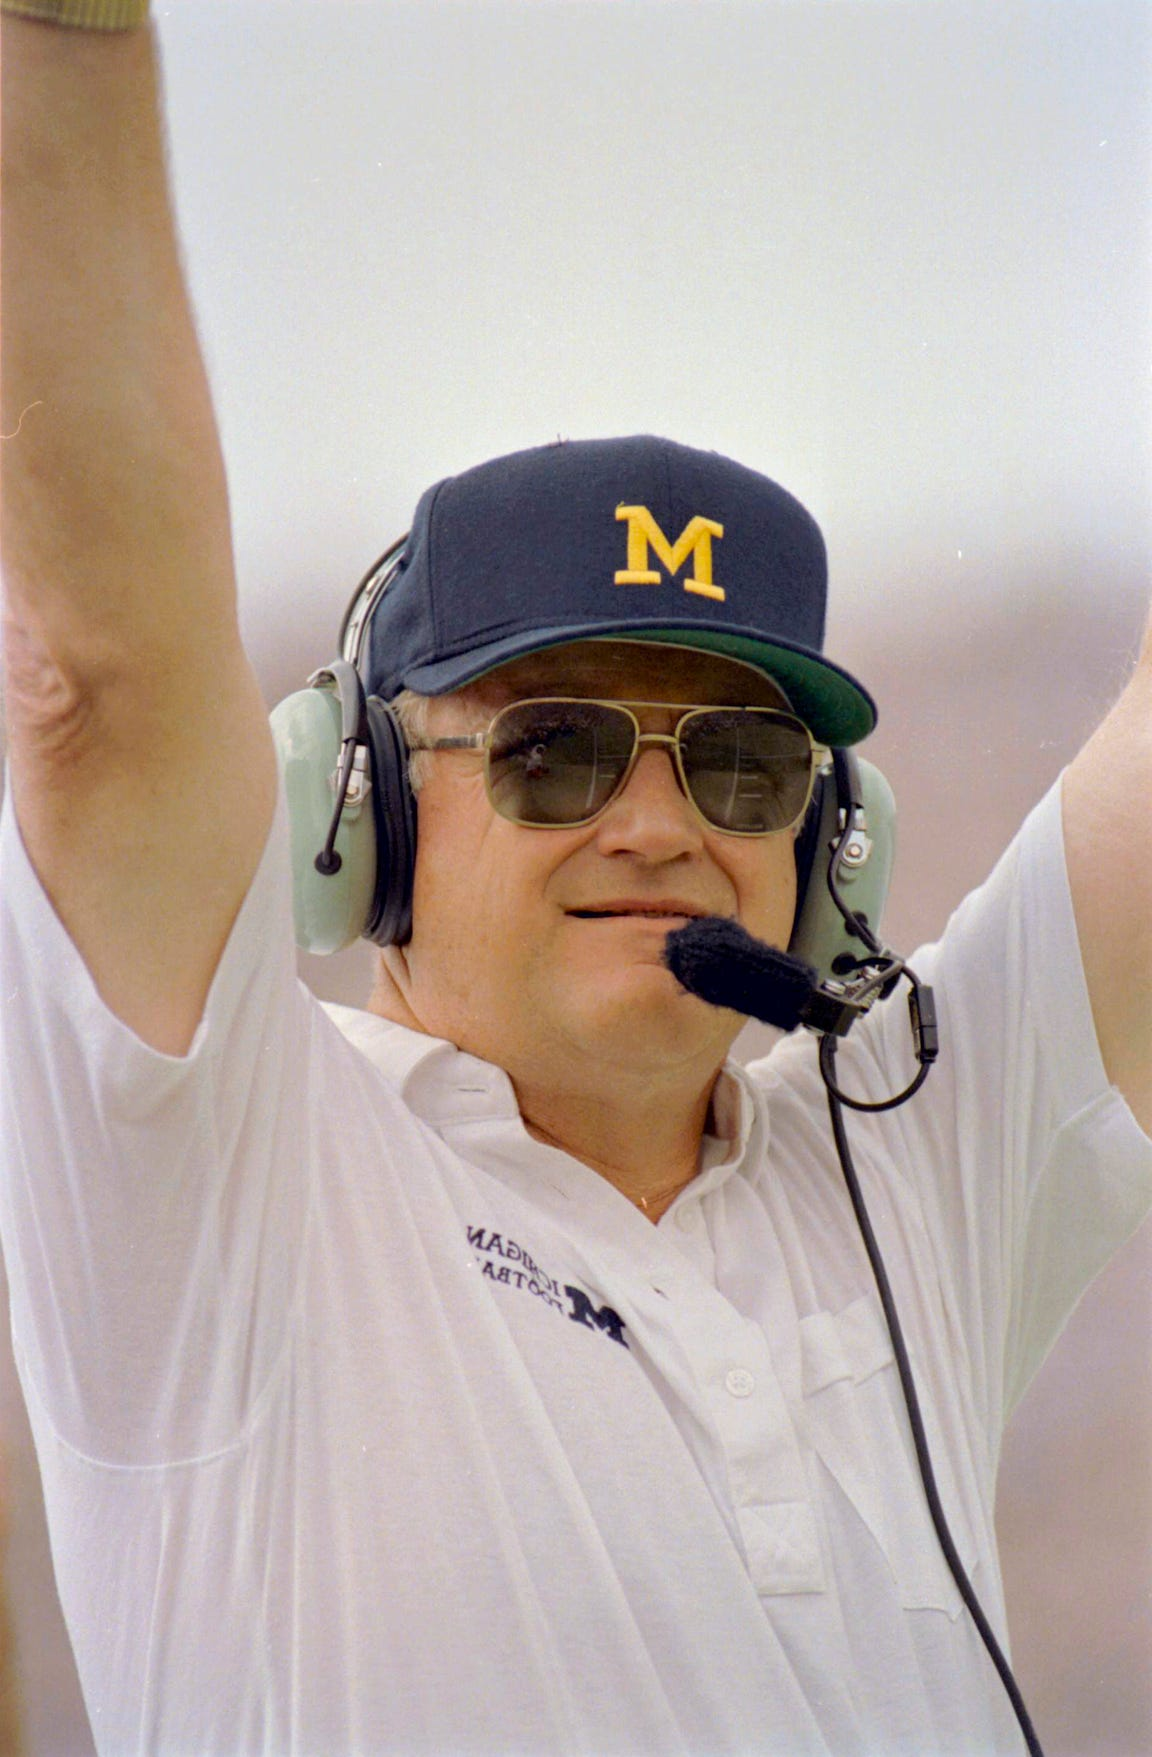 A one-time offensive lineman for Bo Schembechler at the University of Michigan, Hackett stresses teamwork within the sprawling automaker.